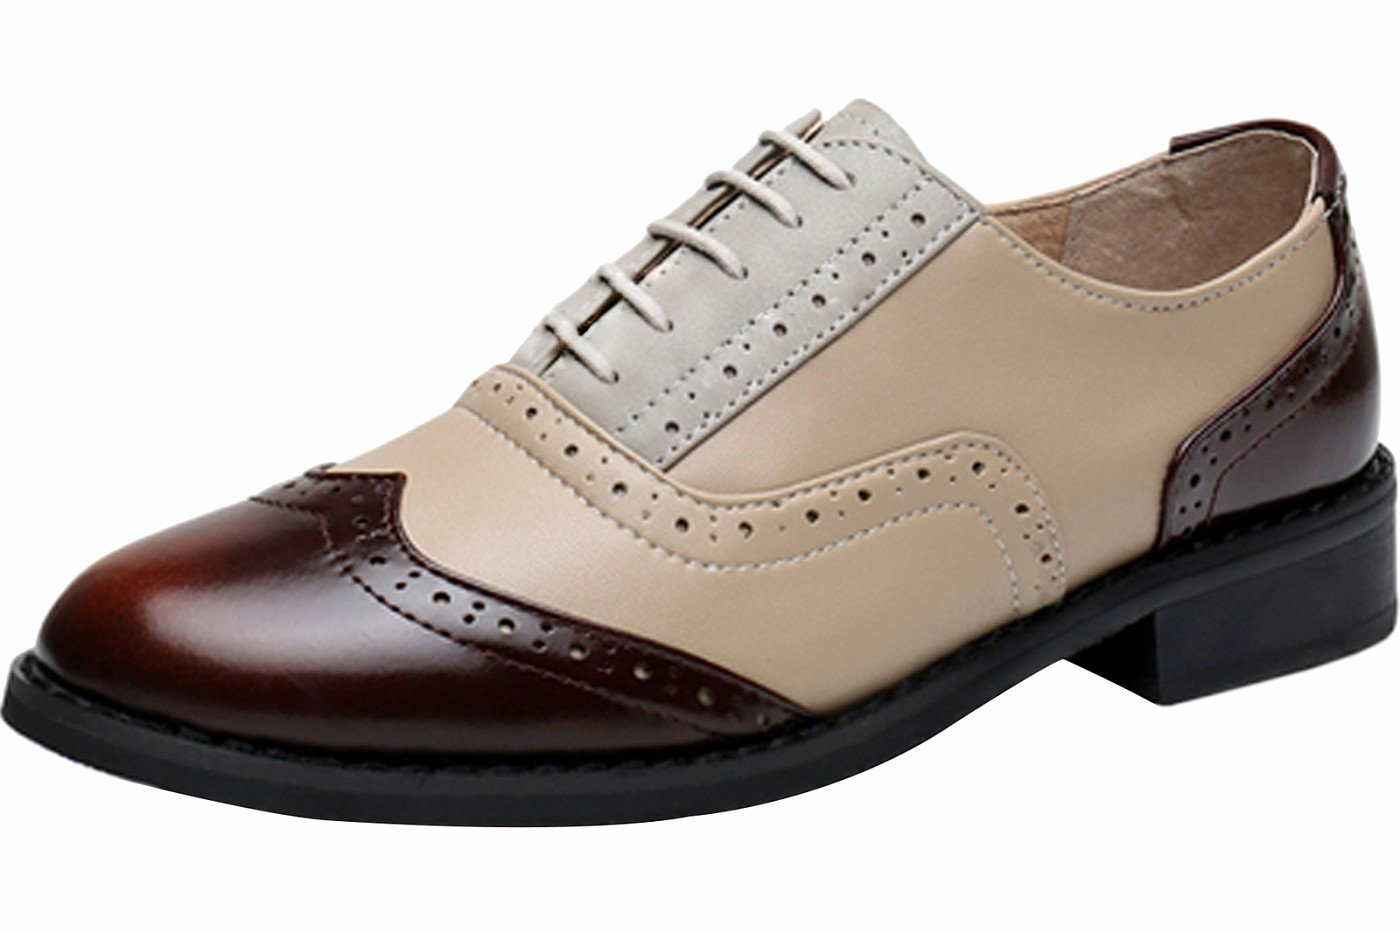 LaRosa Women's Handmade Assorted Colors Carved Wingtip Lace-up Leather Brogues Flat Oxford Shoes,Brown Beige Grey,7.5 B(M)